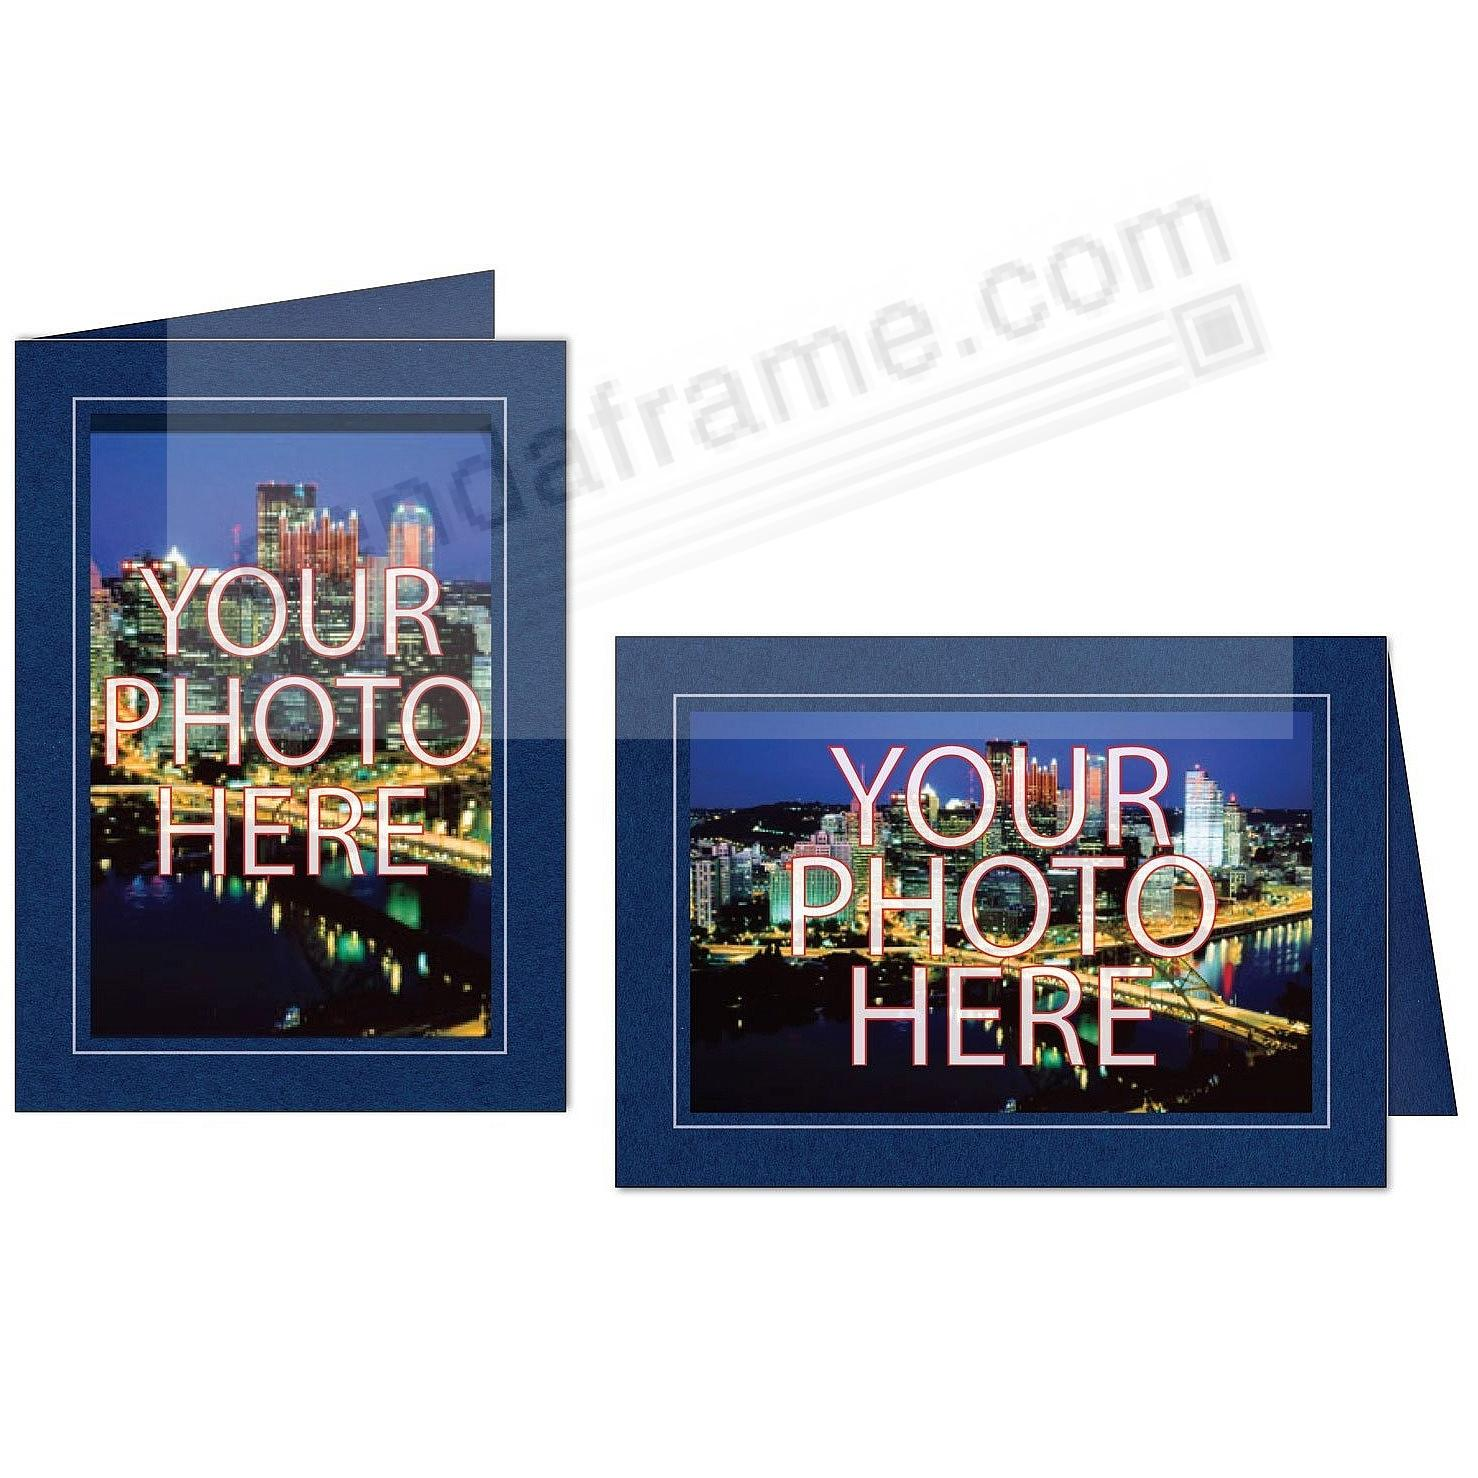 NAVY-BLUE w/Silver Trim Border Photo Insert Card (sold in 10s)